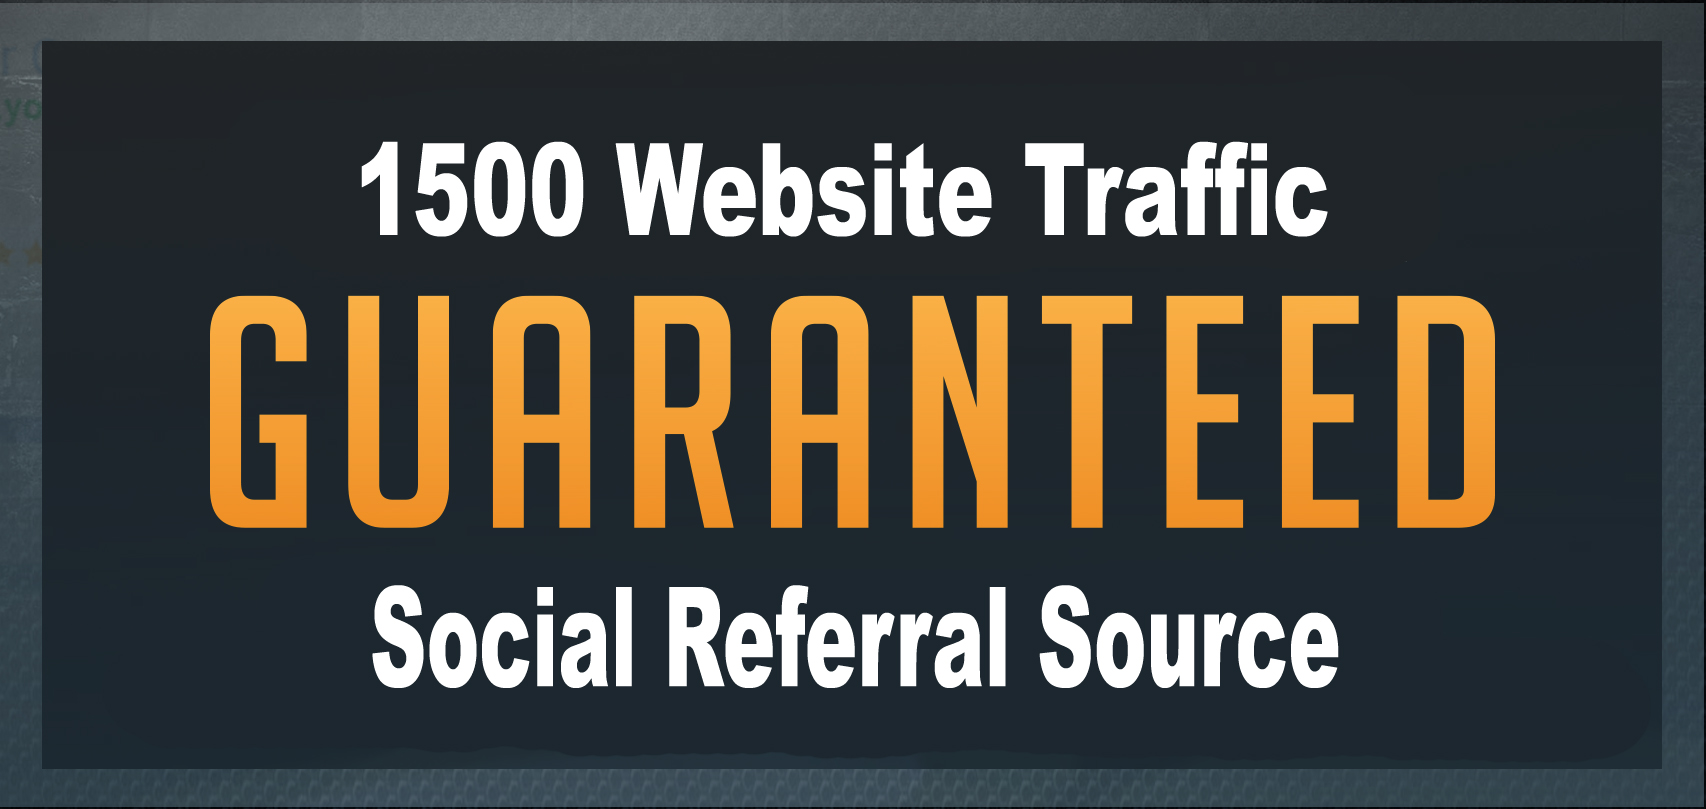 Provide 1500 Referral Source Website Traffic